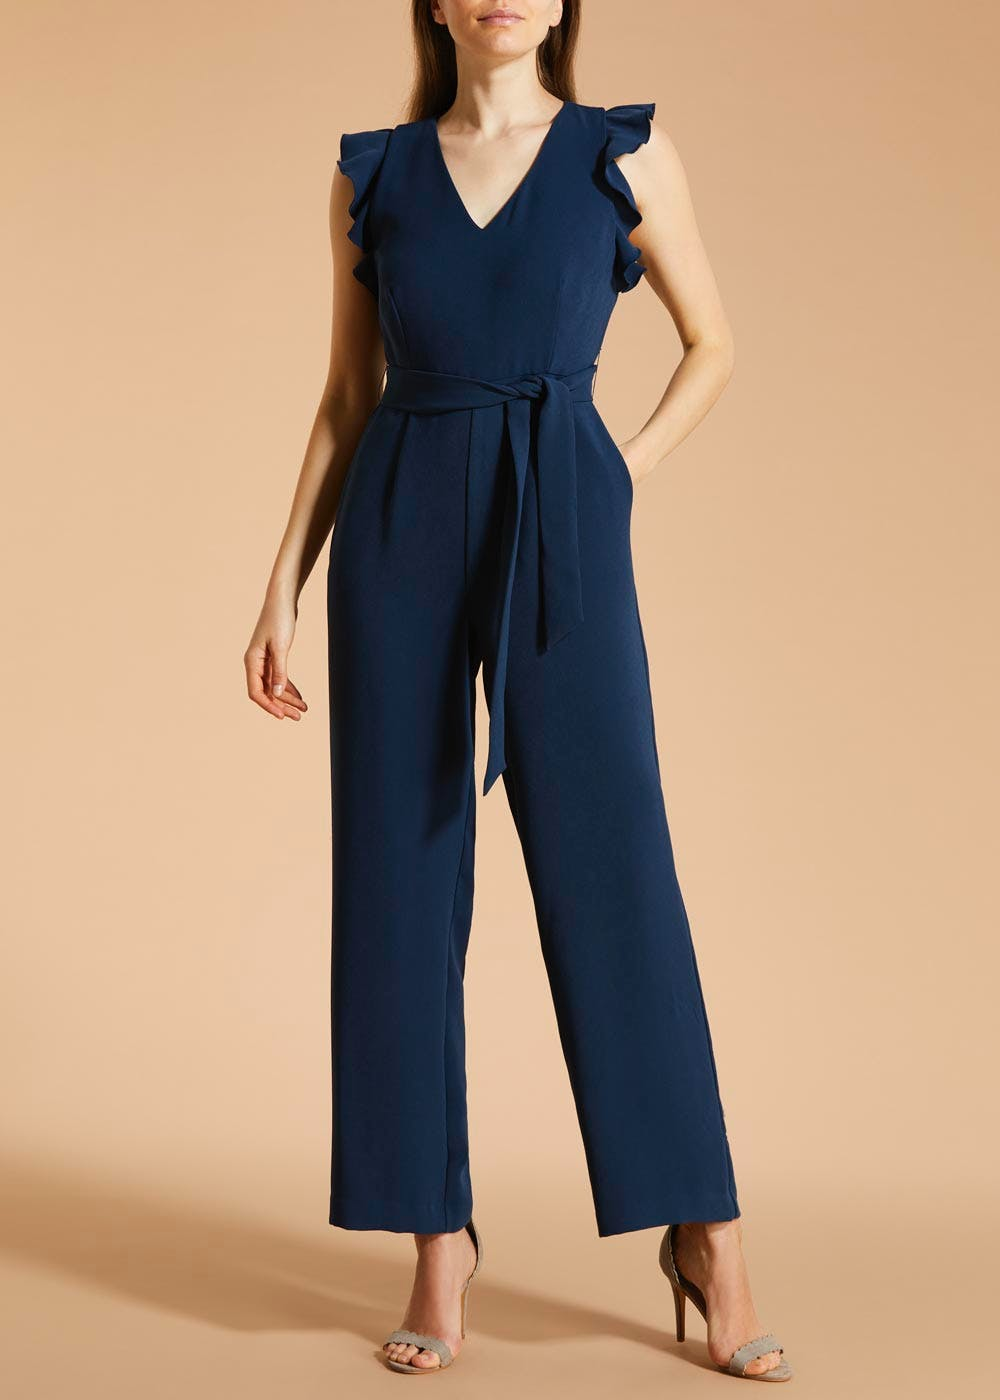 results for all in one trouser suit Save all in one trouser suit to get e-mail alerts and updates on your eBay Feed. Unfollow all in one trouser suit to stop getting updates on your eBay feed.